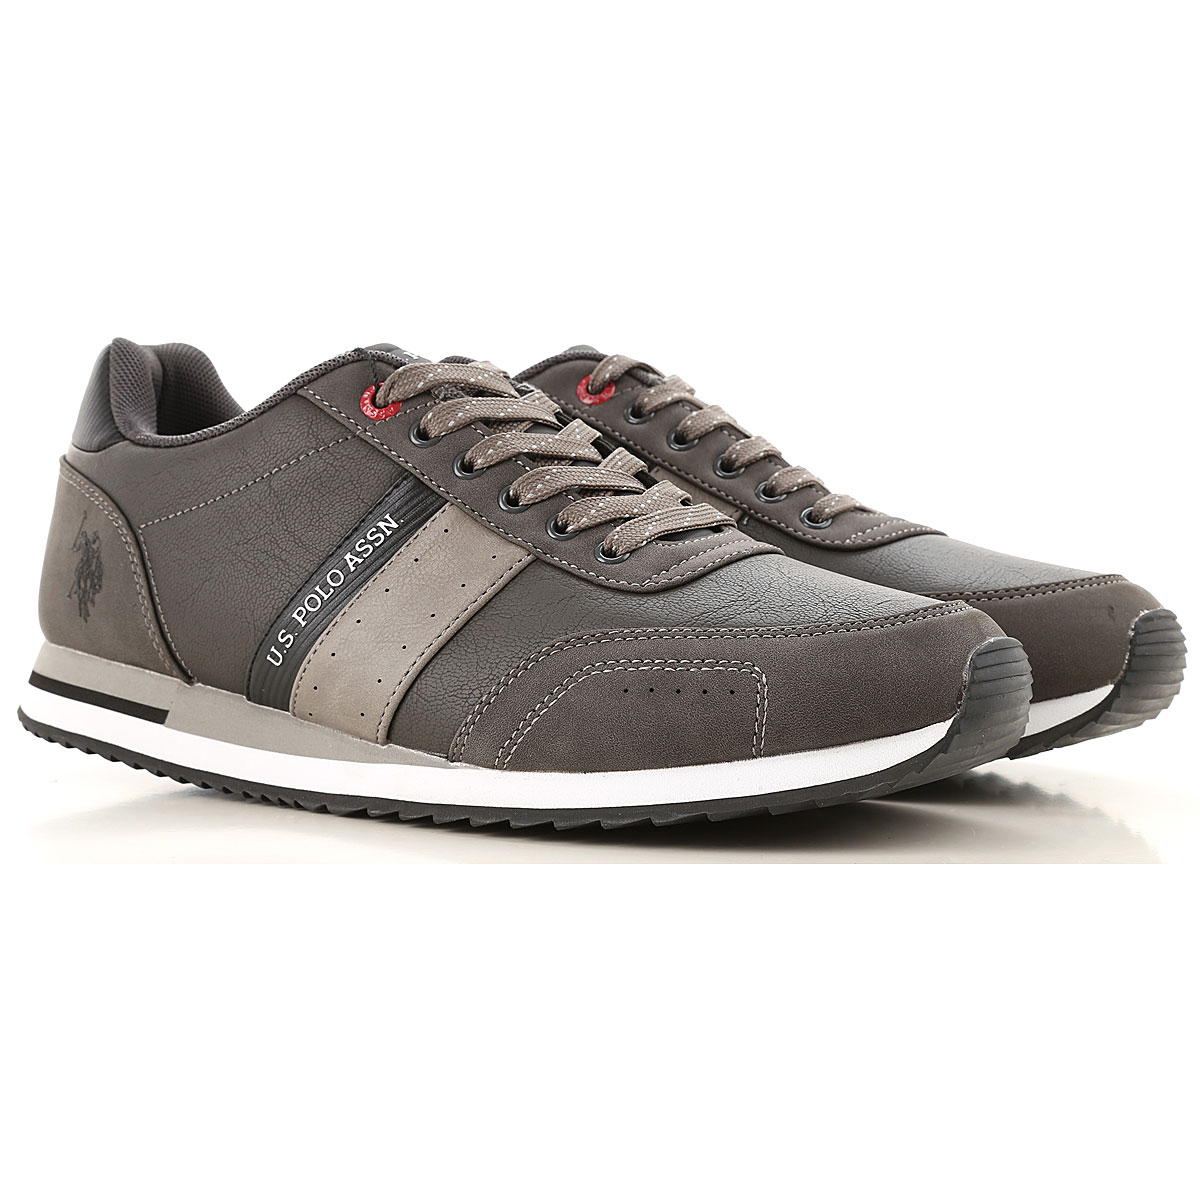 U.S. Polo Sneakers for Men On Sale, antracite, Eco Leather, 2019, 10 7 8 9